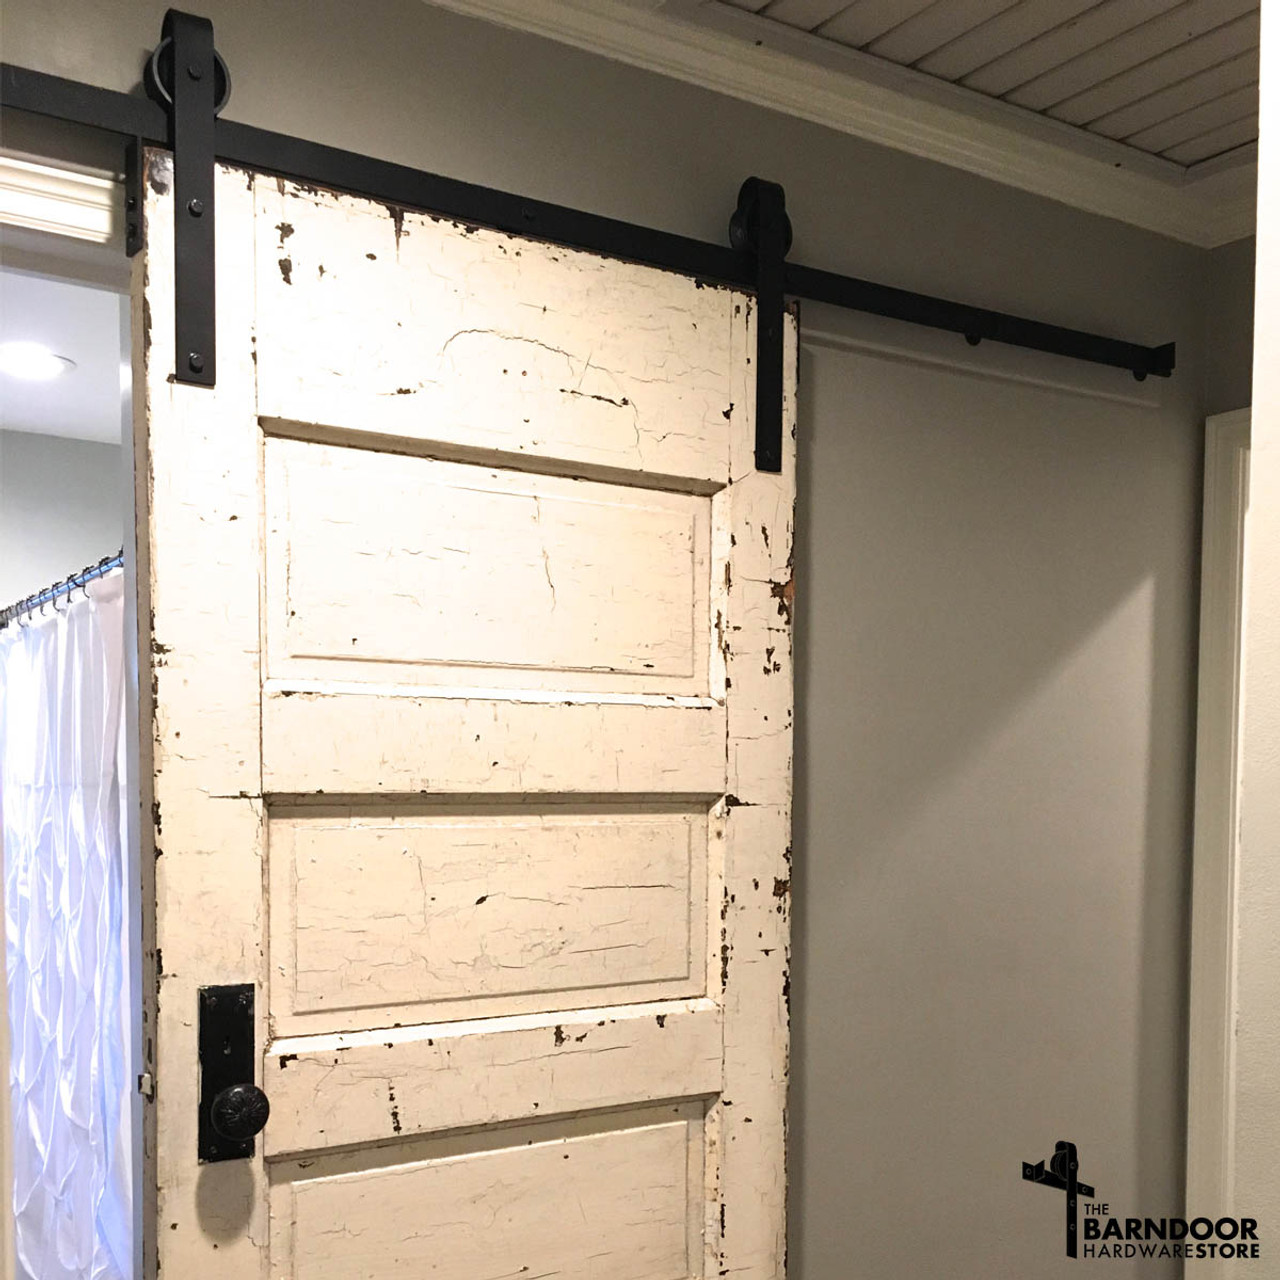 Bypass Barn Door Hardware The Single Track Bypass Barn Door Hardware Kit Allows Two Doors To